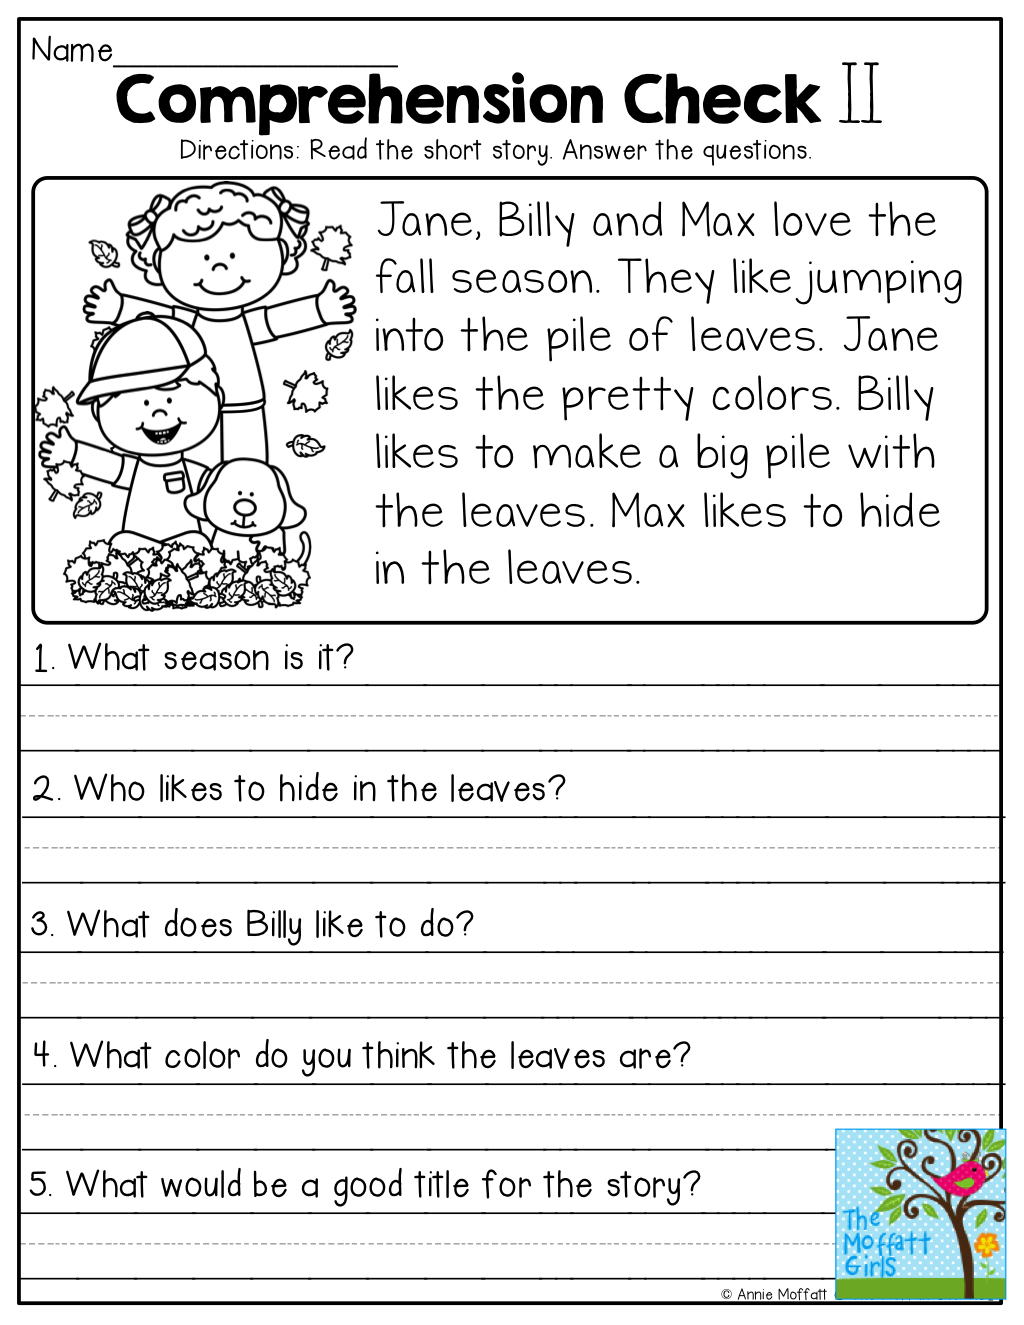 Comprehension Checks And So Many More Useful Printables! | Reading - Free Printable English Comprehension Worksheets For Grade 4